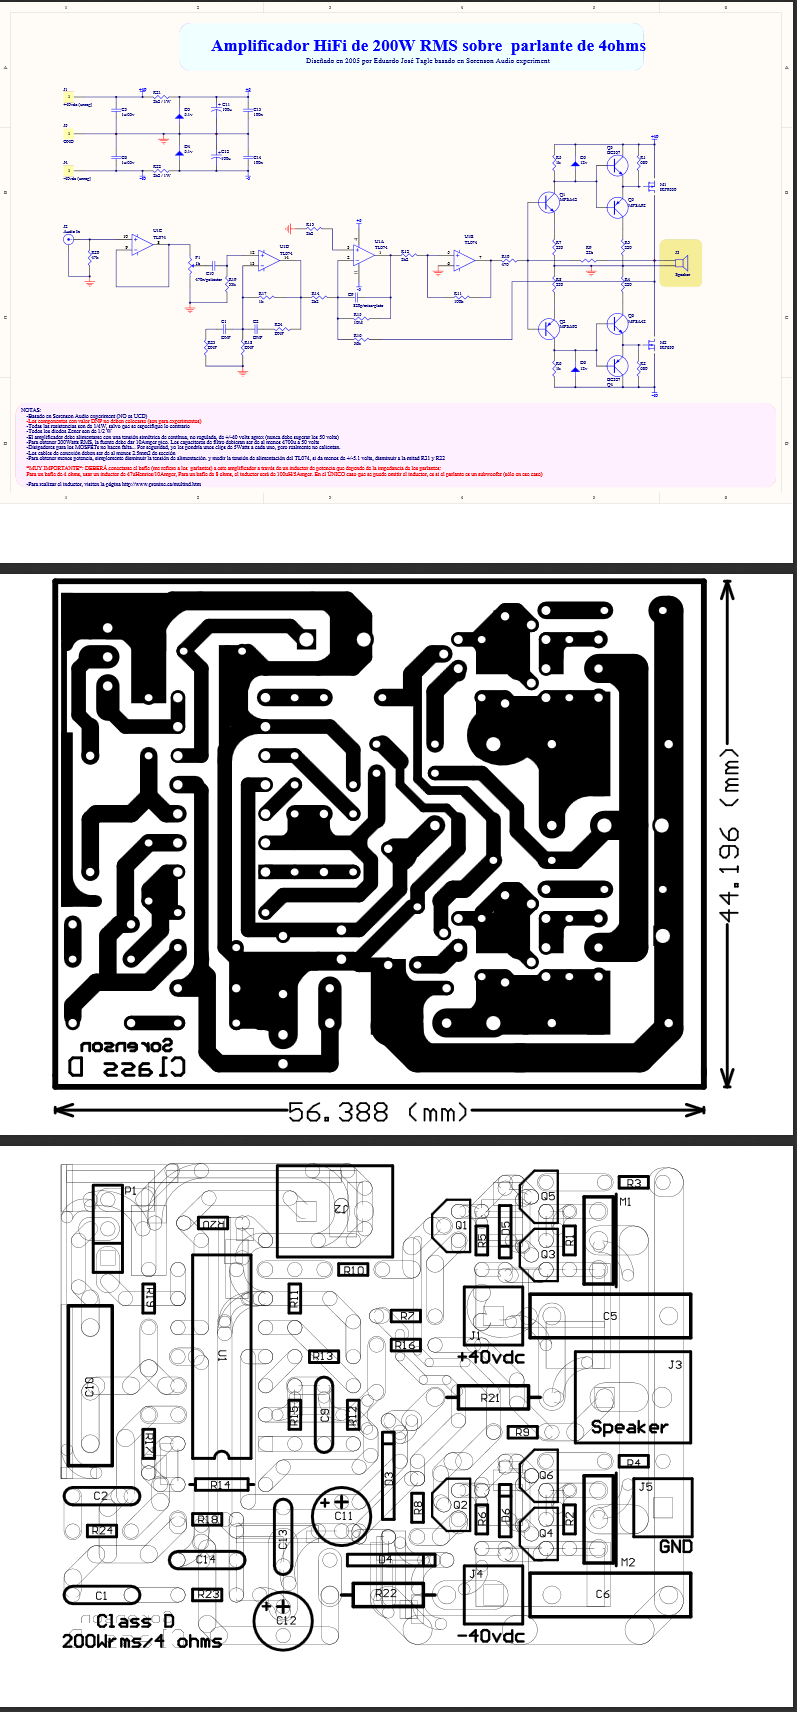 Minultec Amplificadores Mamplificadores On Pinterest Need Working Lm3915 Vu Meter Schematic Page 2 Diyaudio